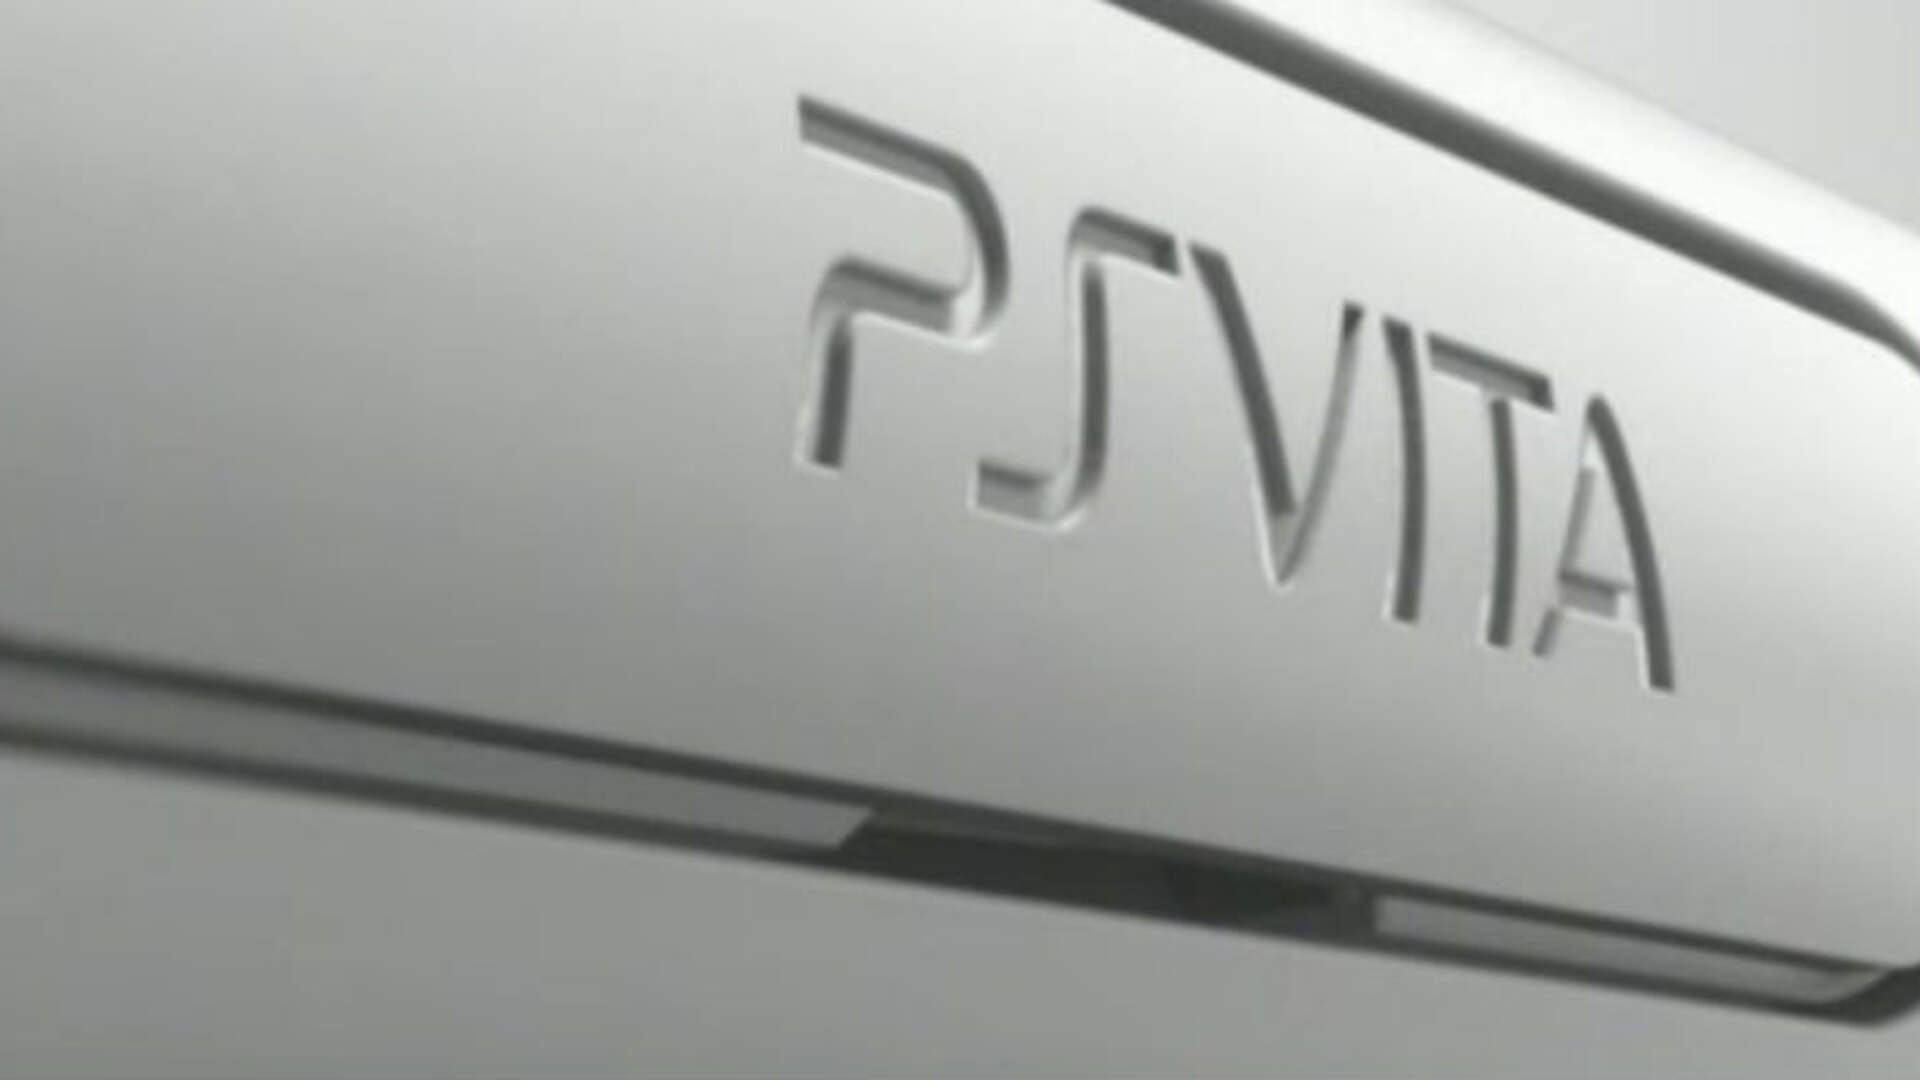 Sony Kills the PlayStation TV and the PSP's Native Storefront